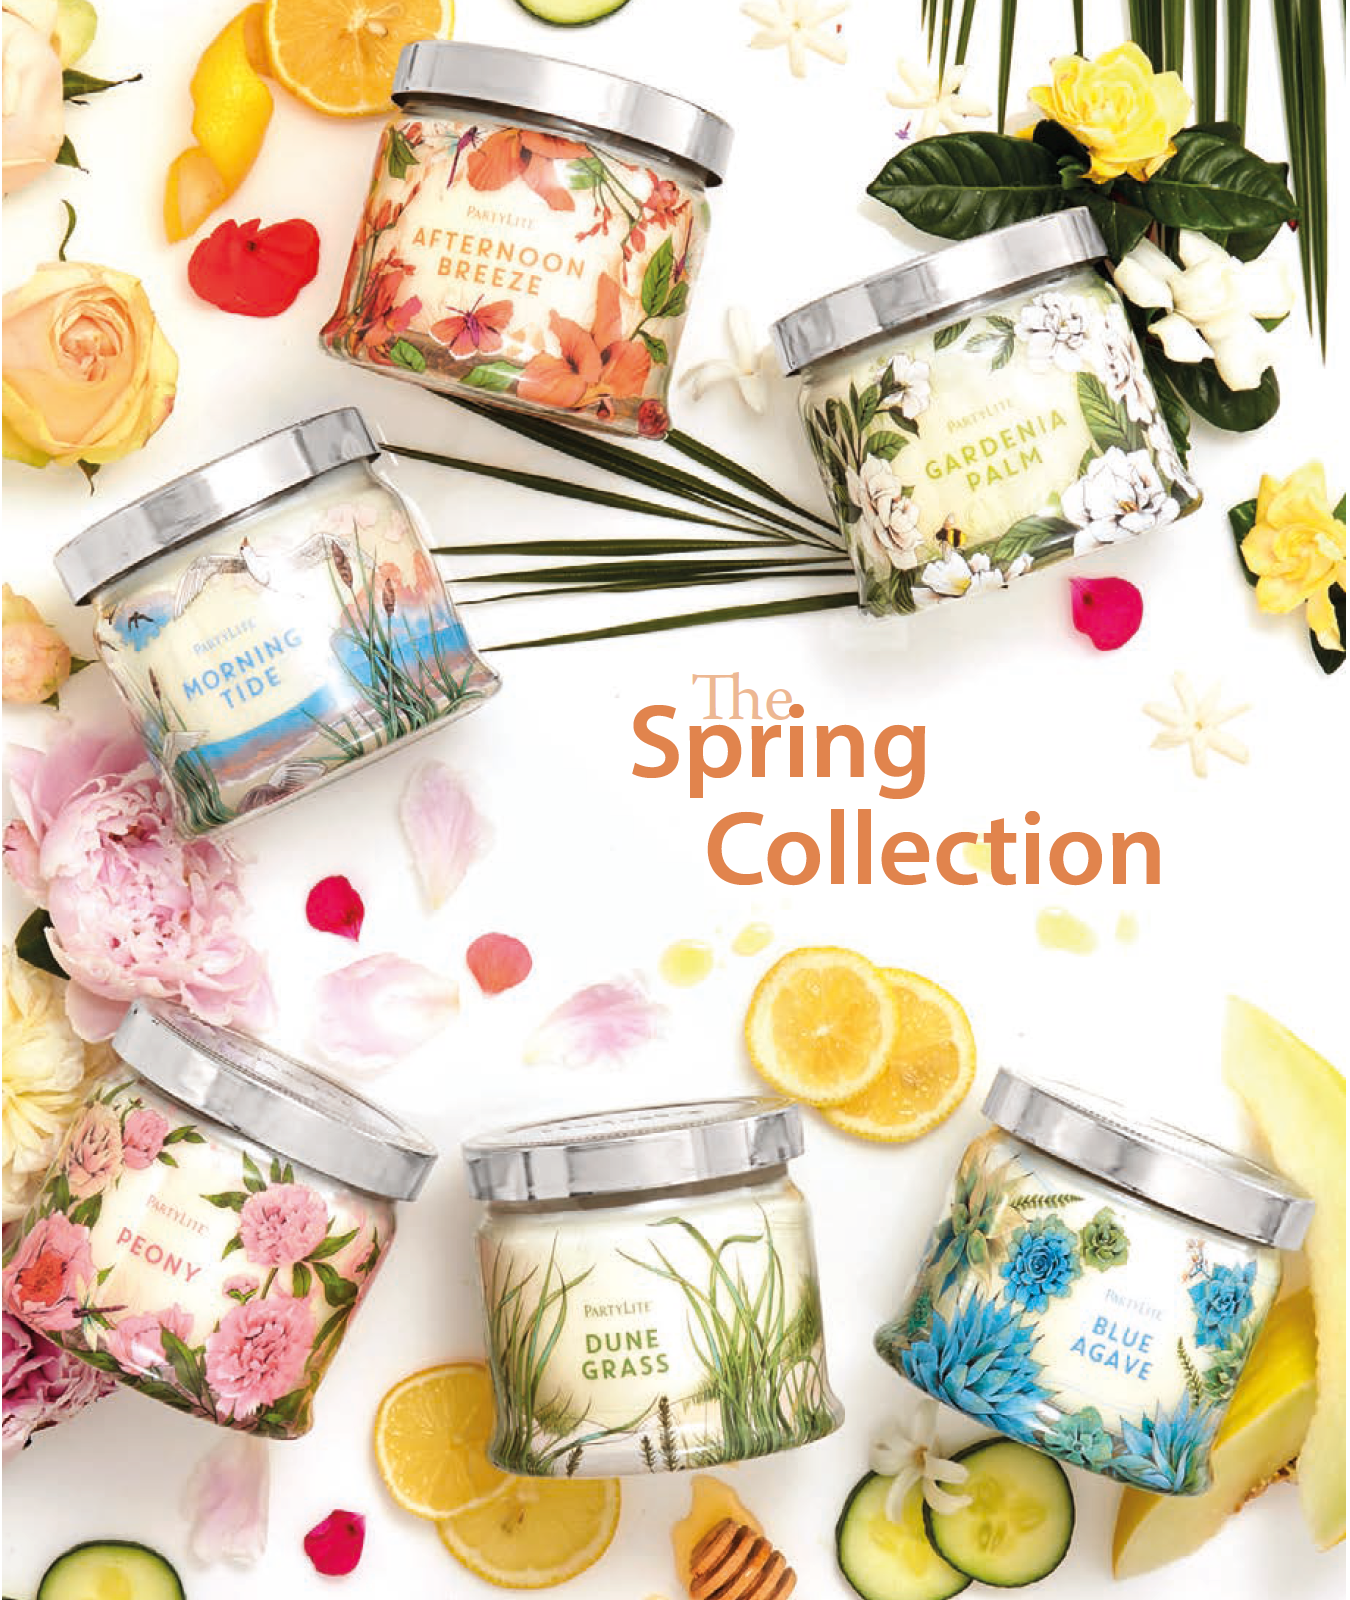 fig 1. Partylite Spring Collection (photo: Partylite catalogue)